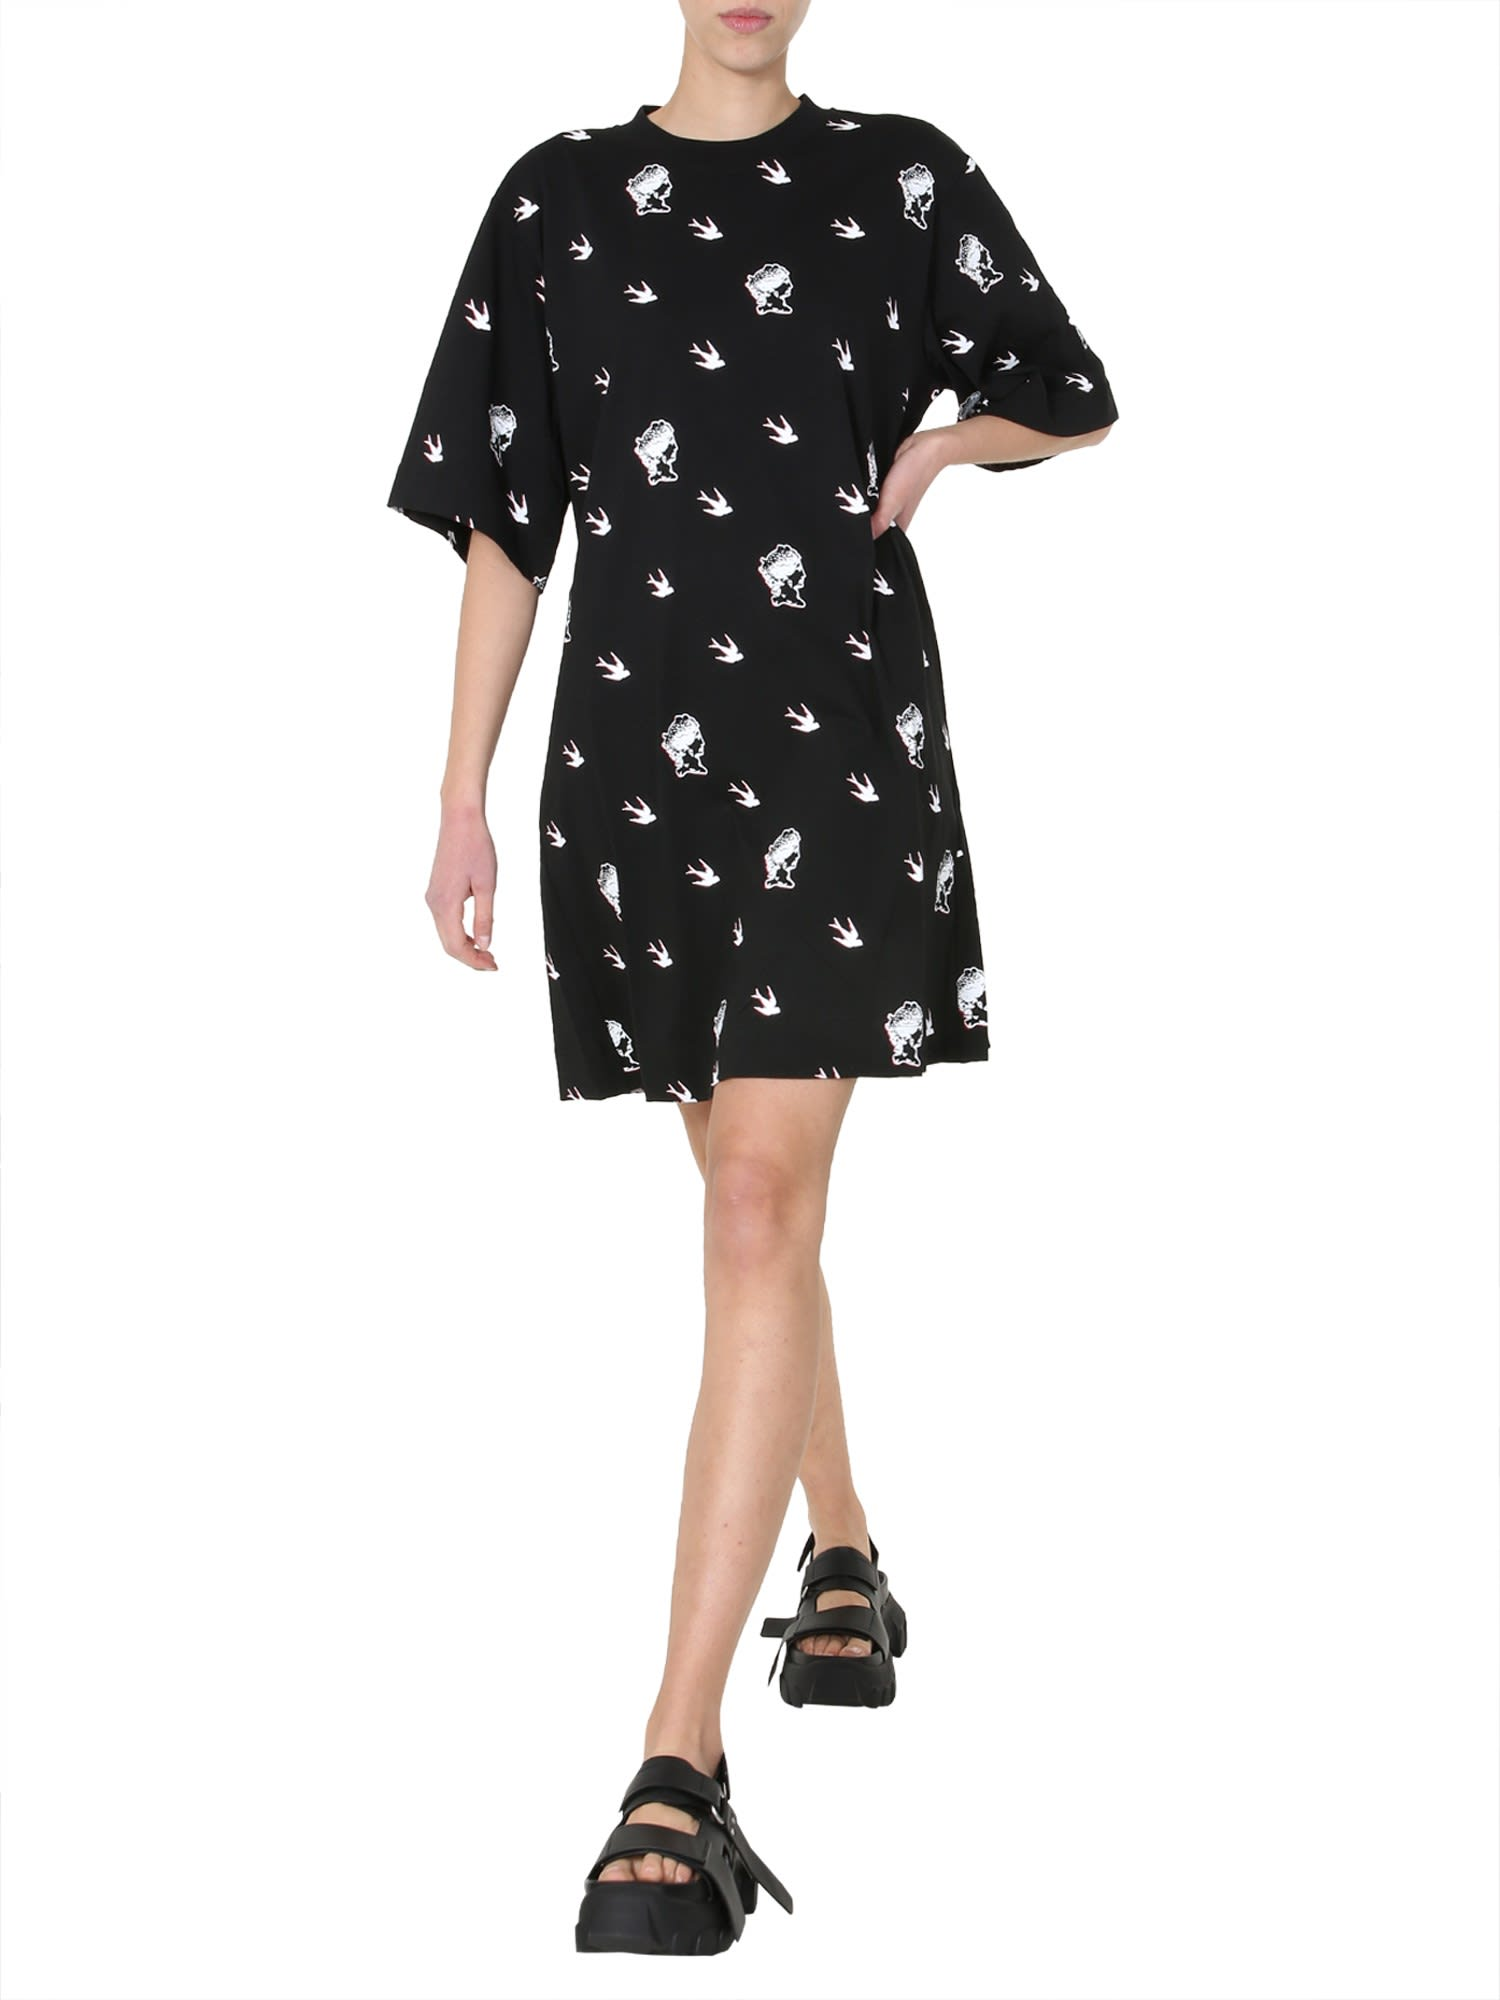 Buy McQ Alexander McQueen Round Neck T-shirt Dress online, shop McQ Alexander McQueen with free shipping